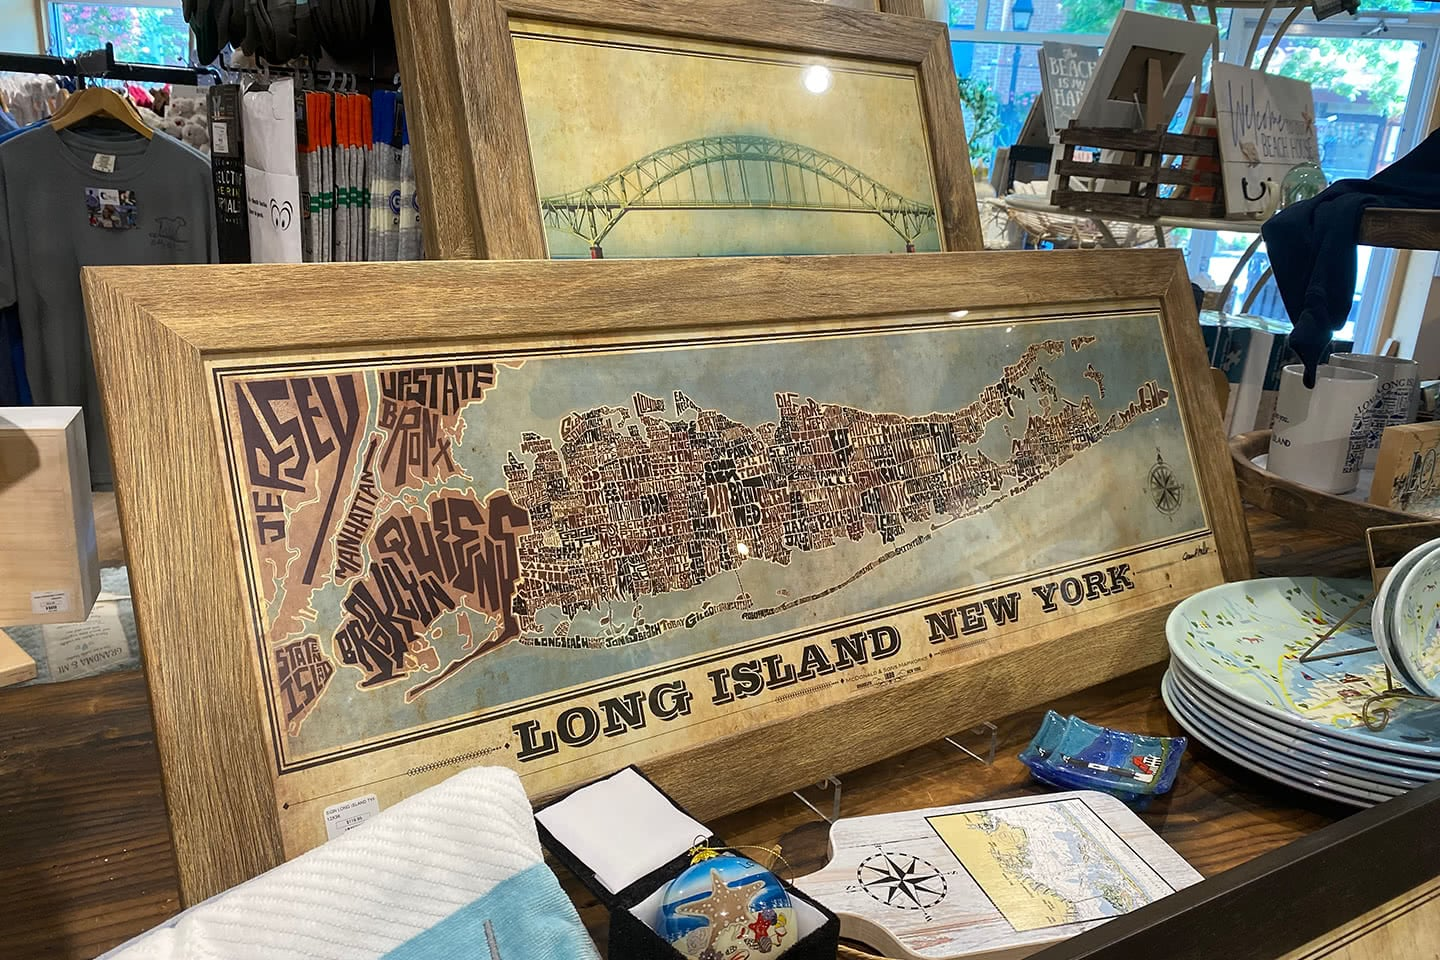 Long Island New York Framed Picture (Home Decor)